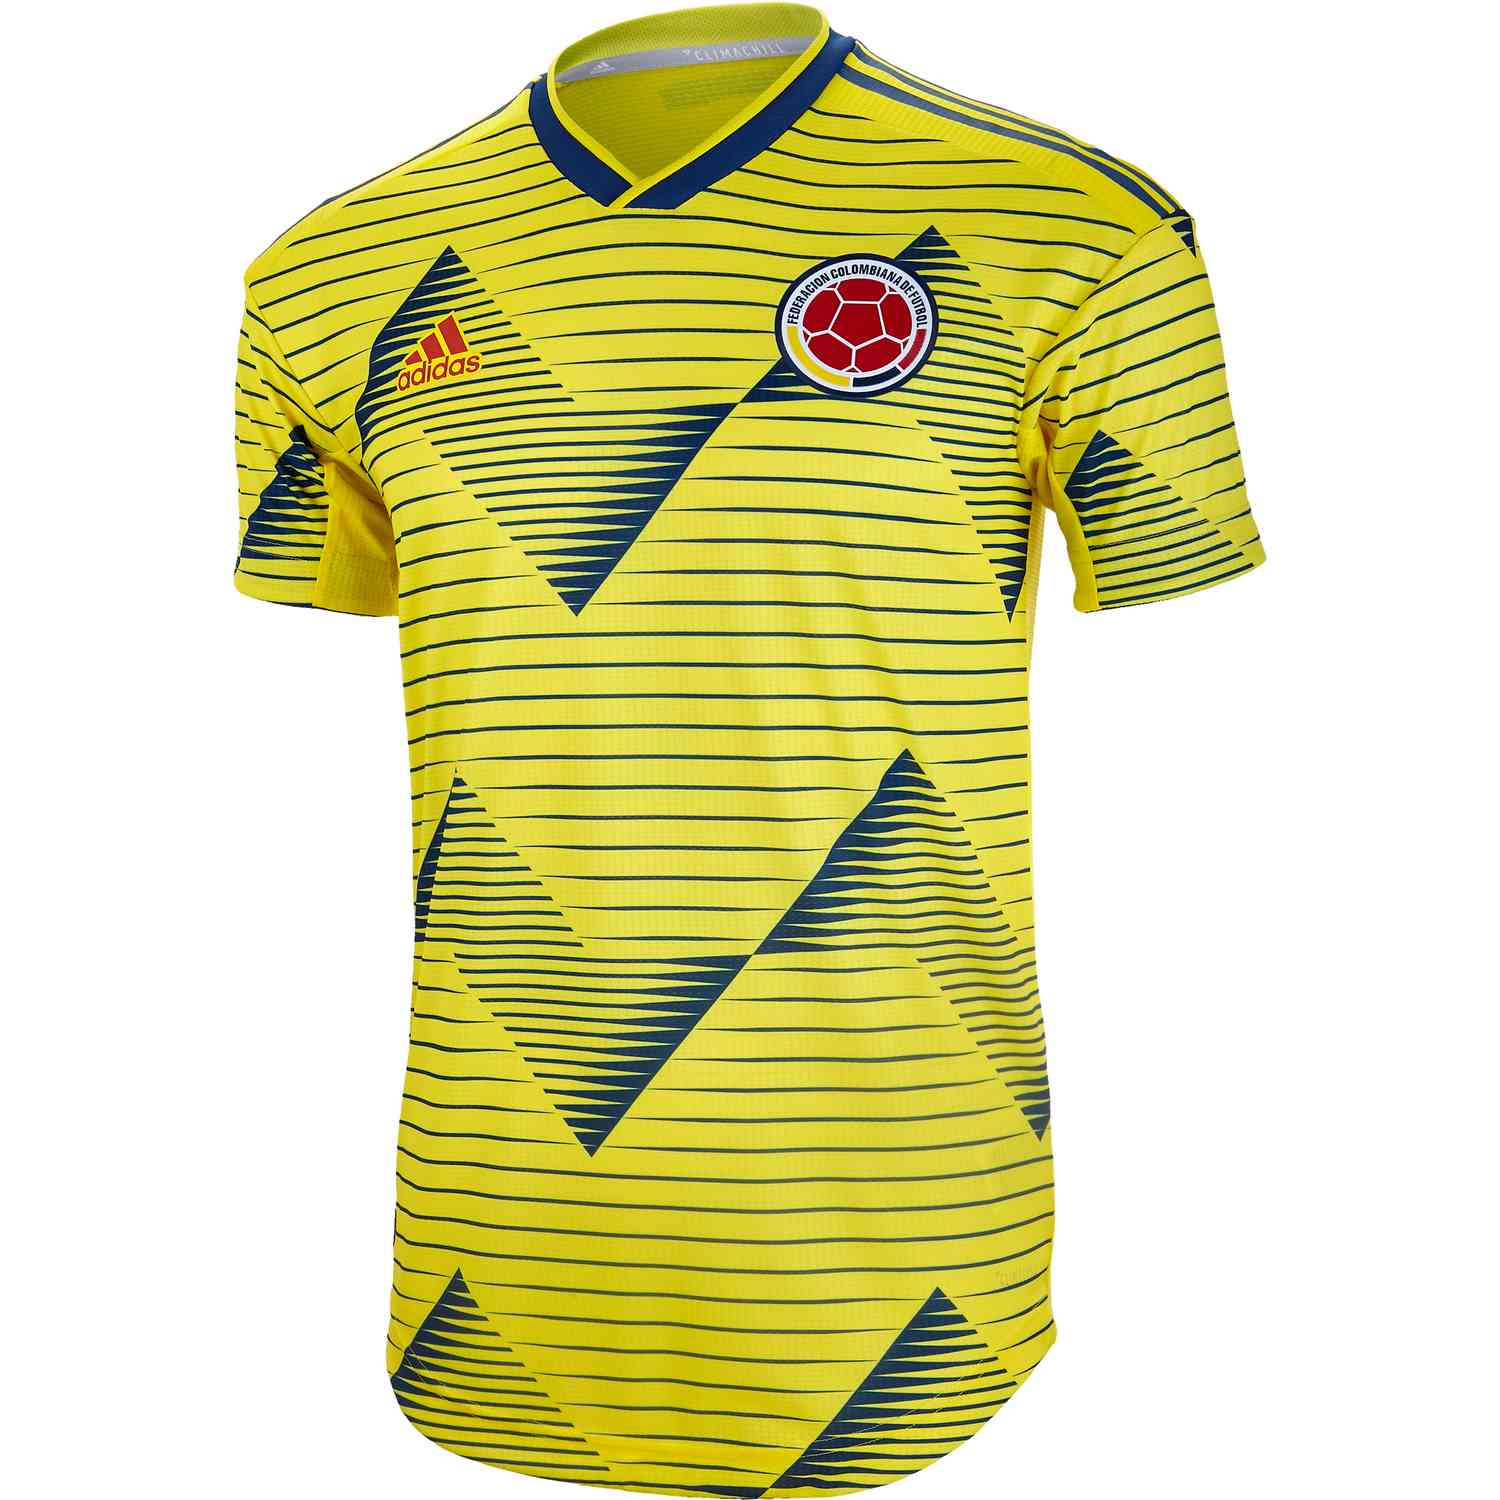 0772dcfe6 2019 adidas Colombia Home Authentic Jersey - Soccer Master